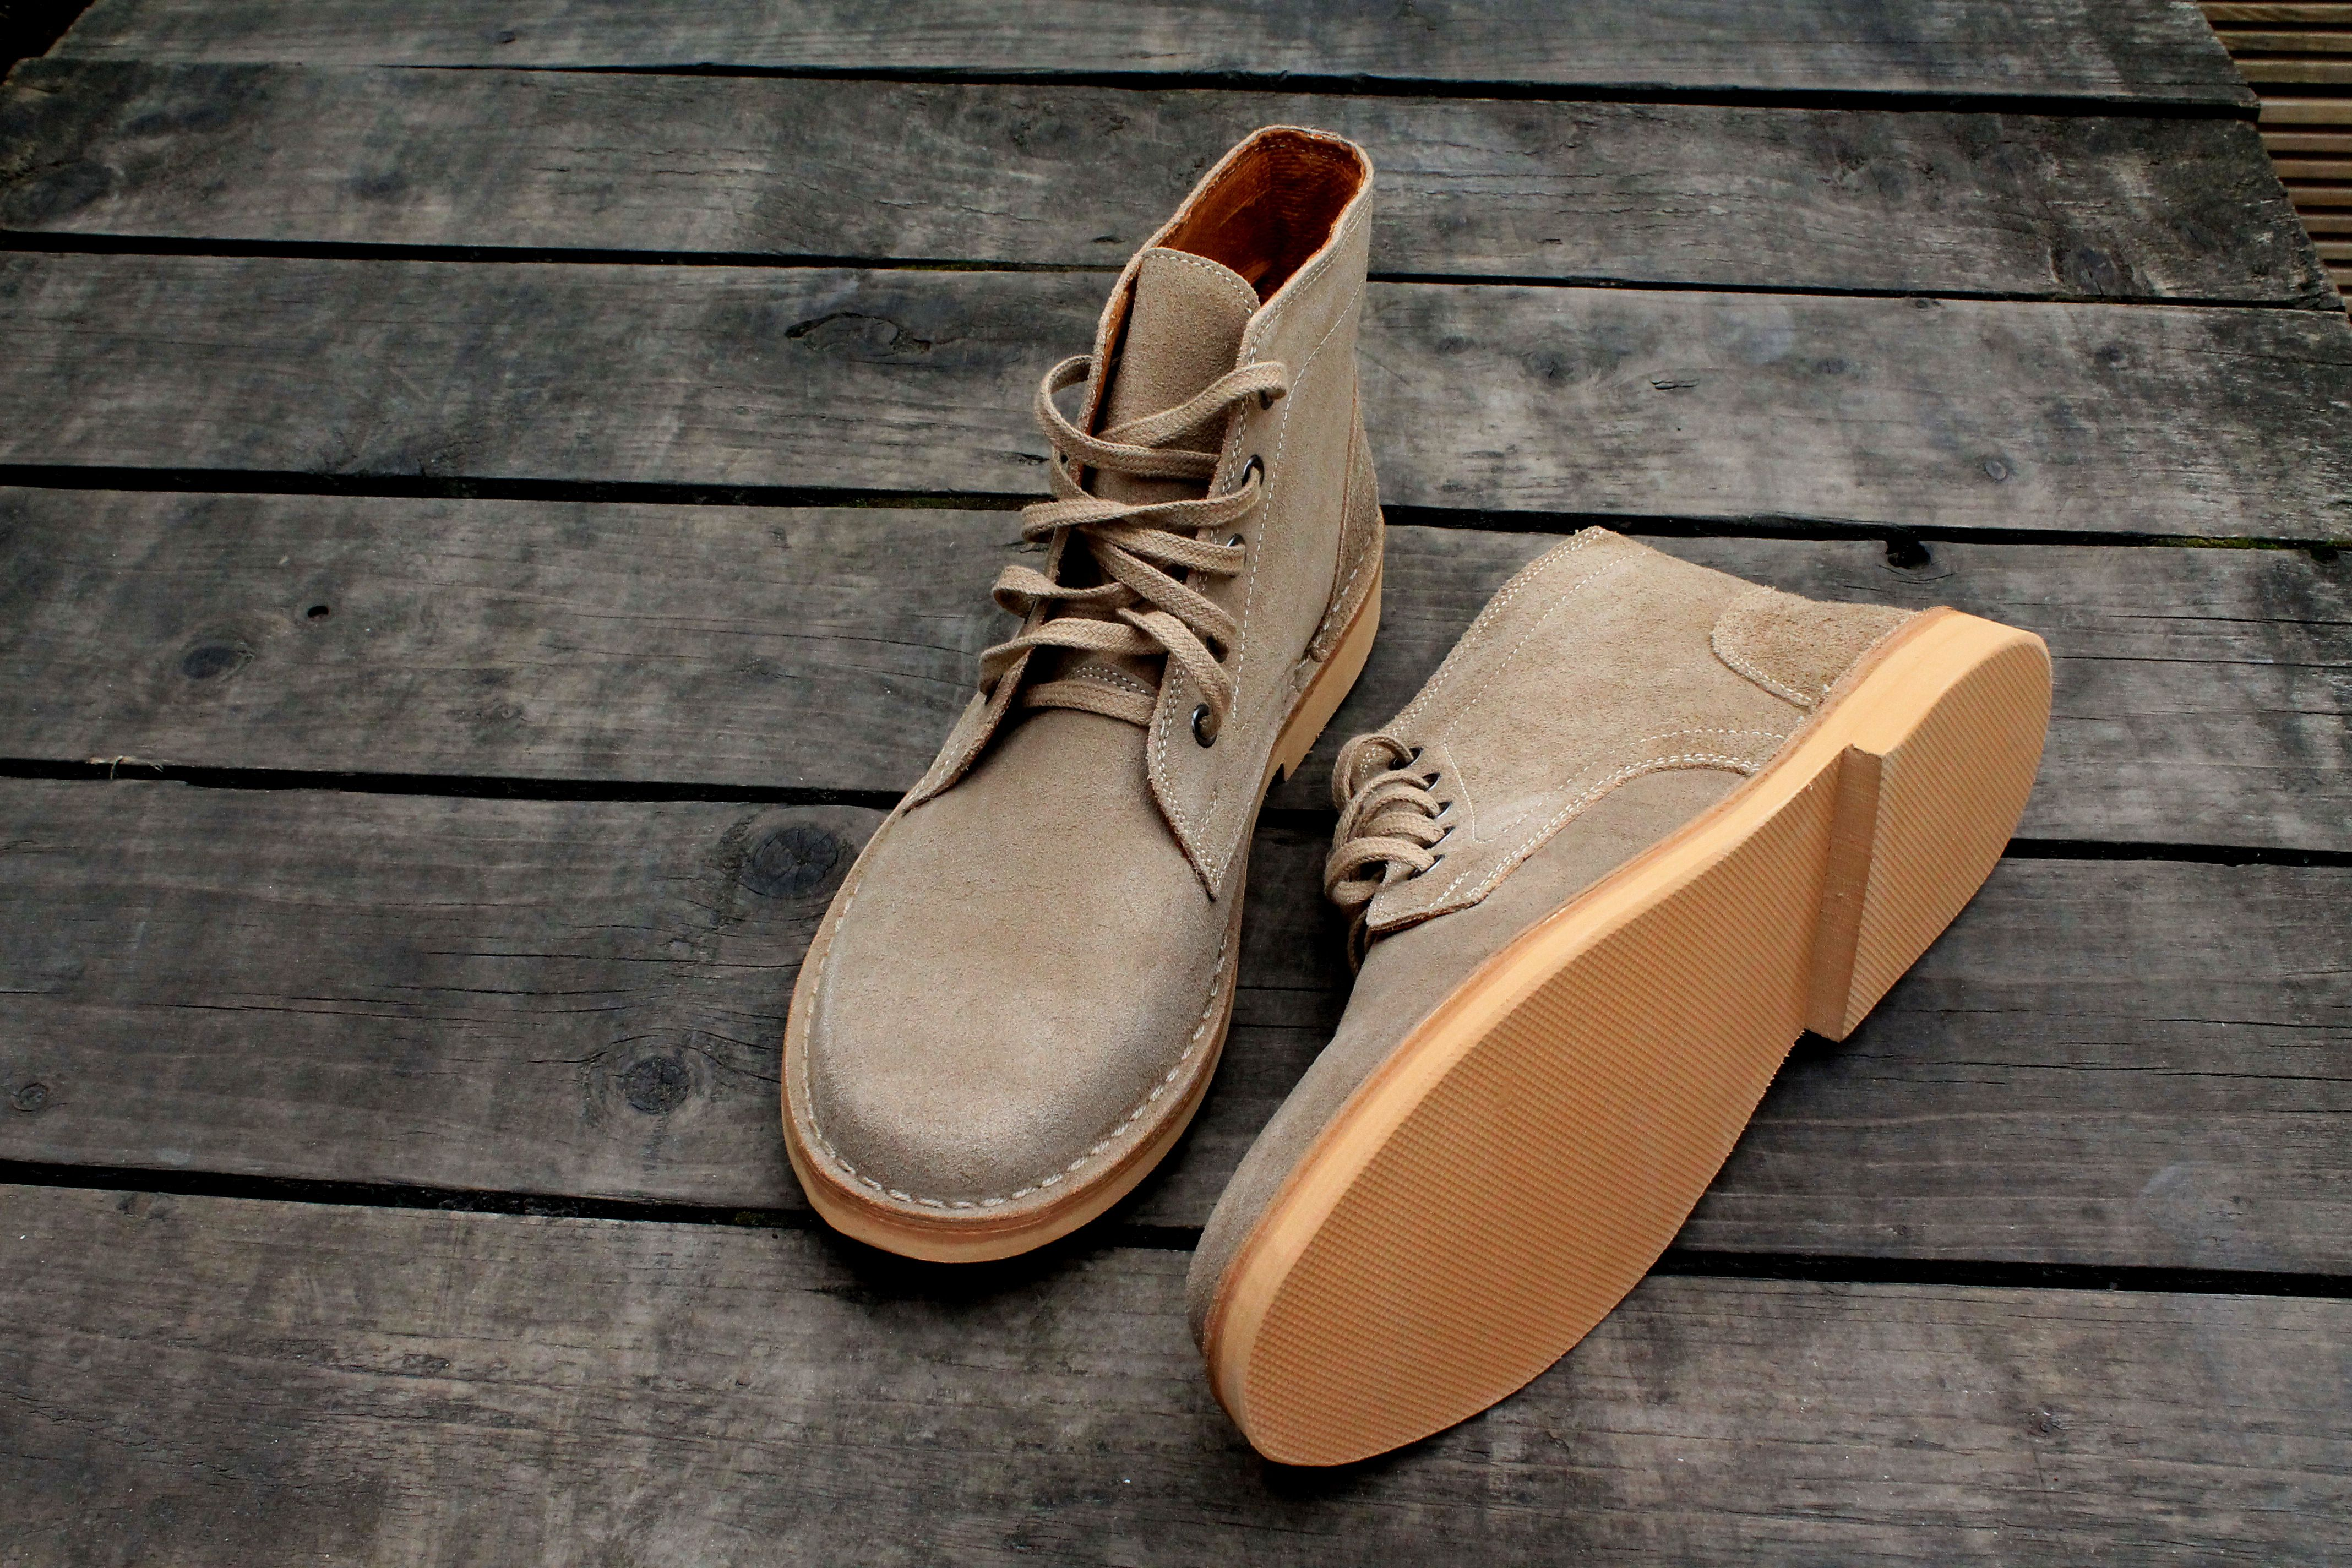 778be5ca2bfeb2 Military desert boots | Roamers Mens Desert Boots SARGENT Taupe ...